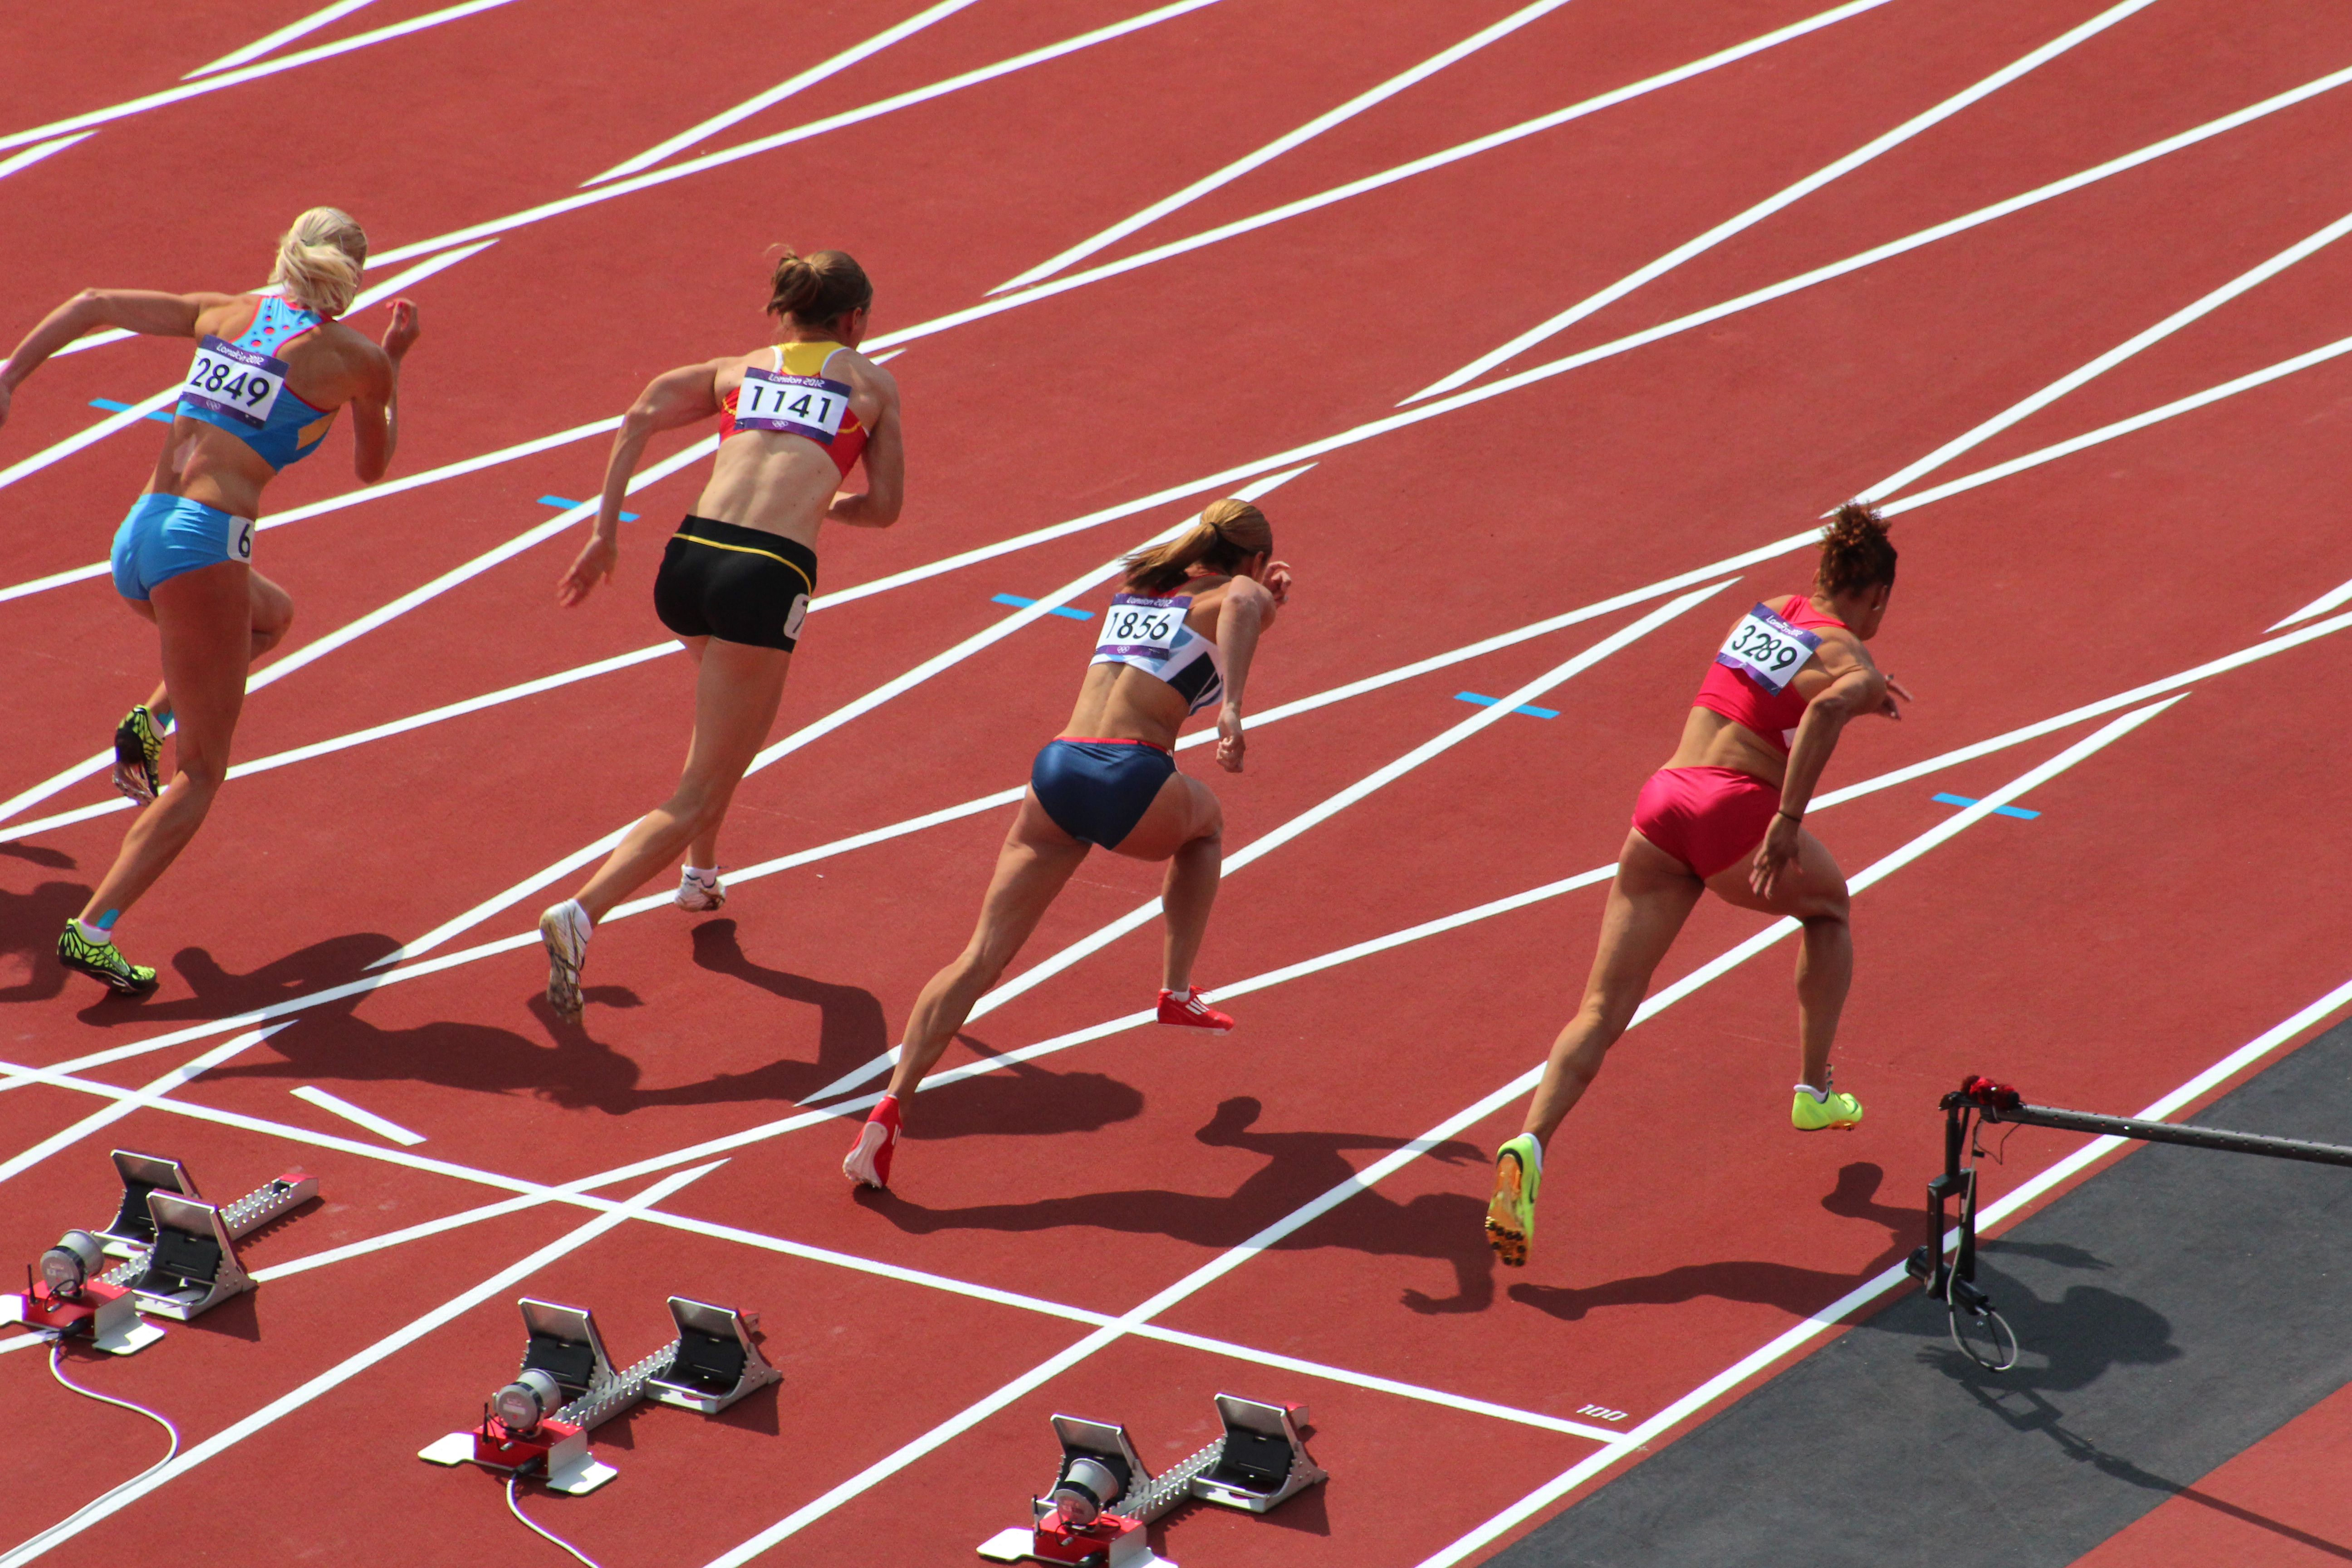 Photograph of female Olympians competing in the 2012 London Summer Olympics